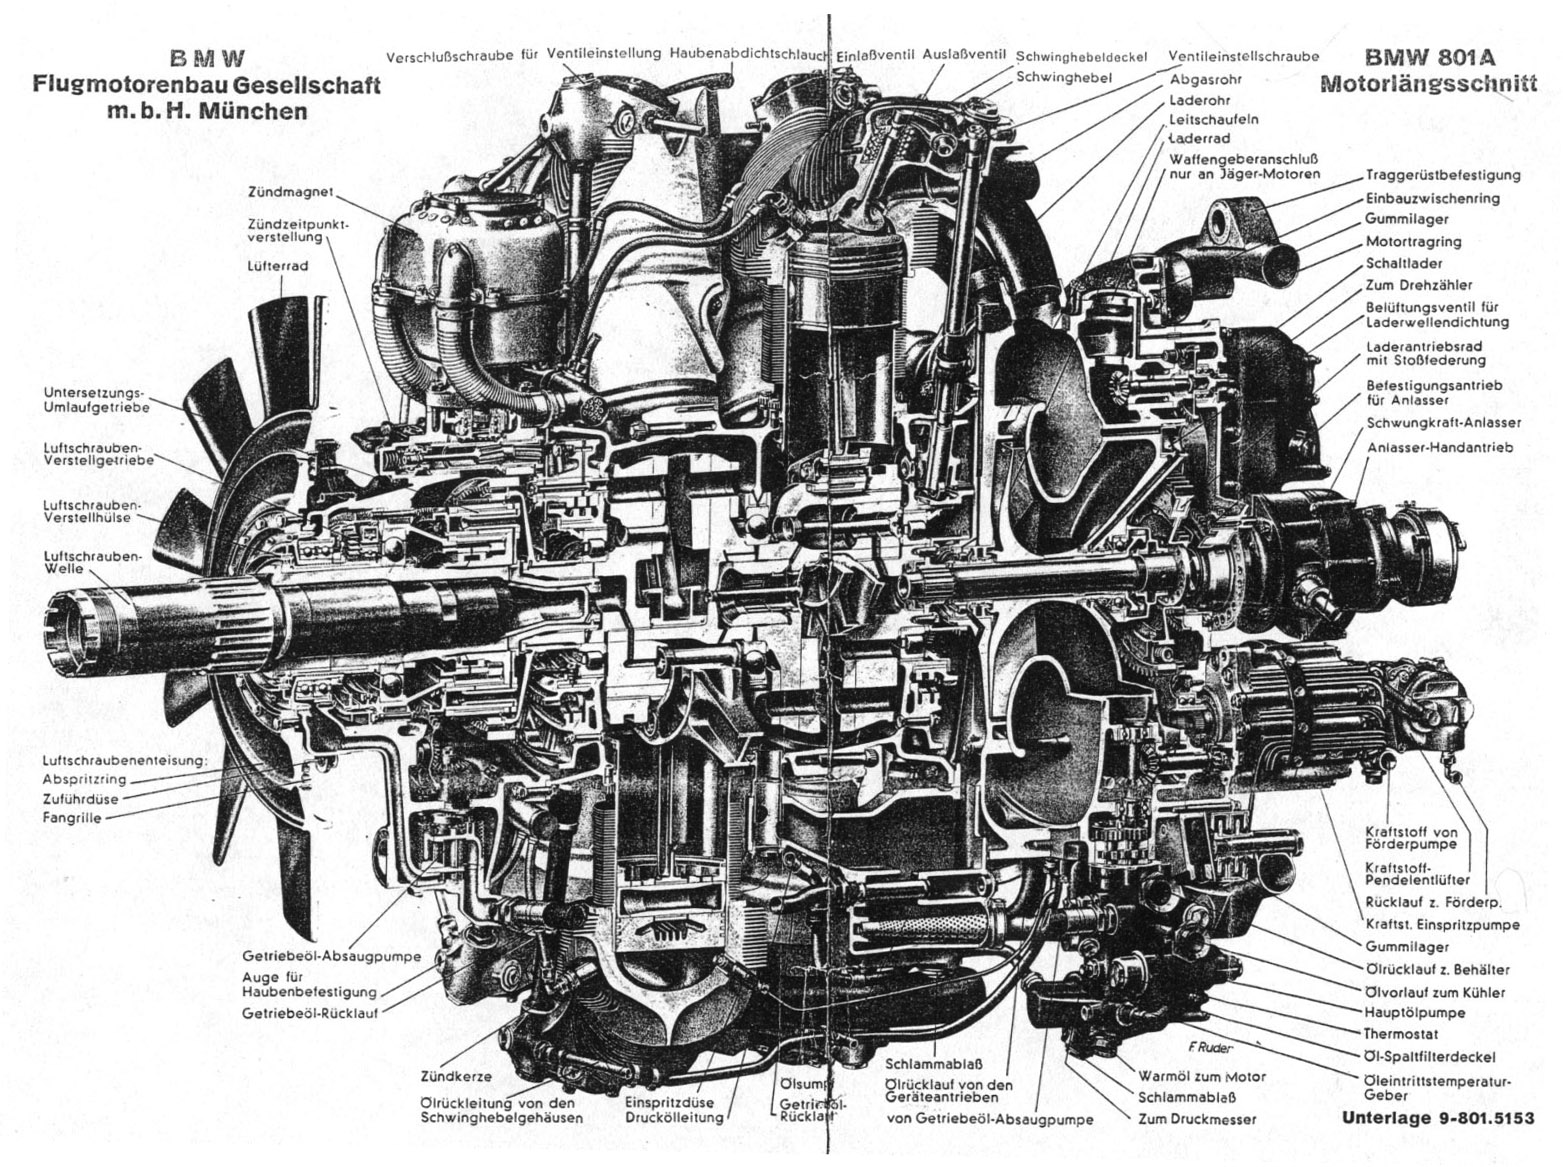 [Cutaway] BMW 801 piston radial aircraft engine